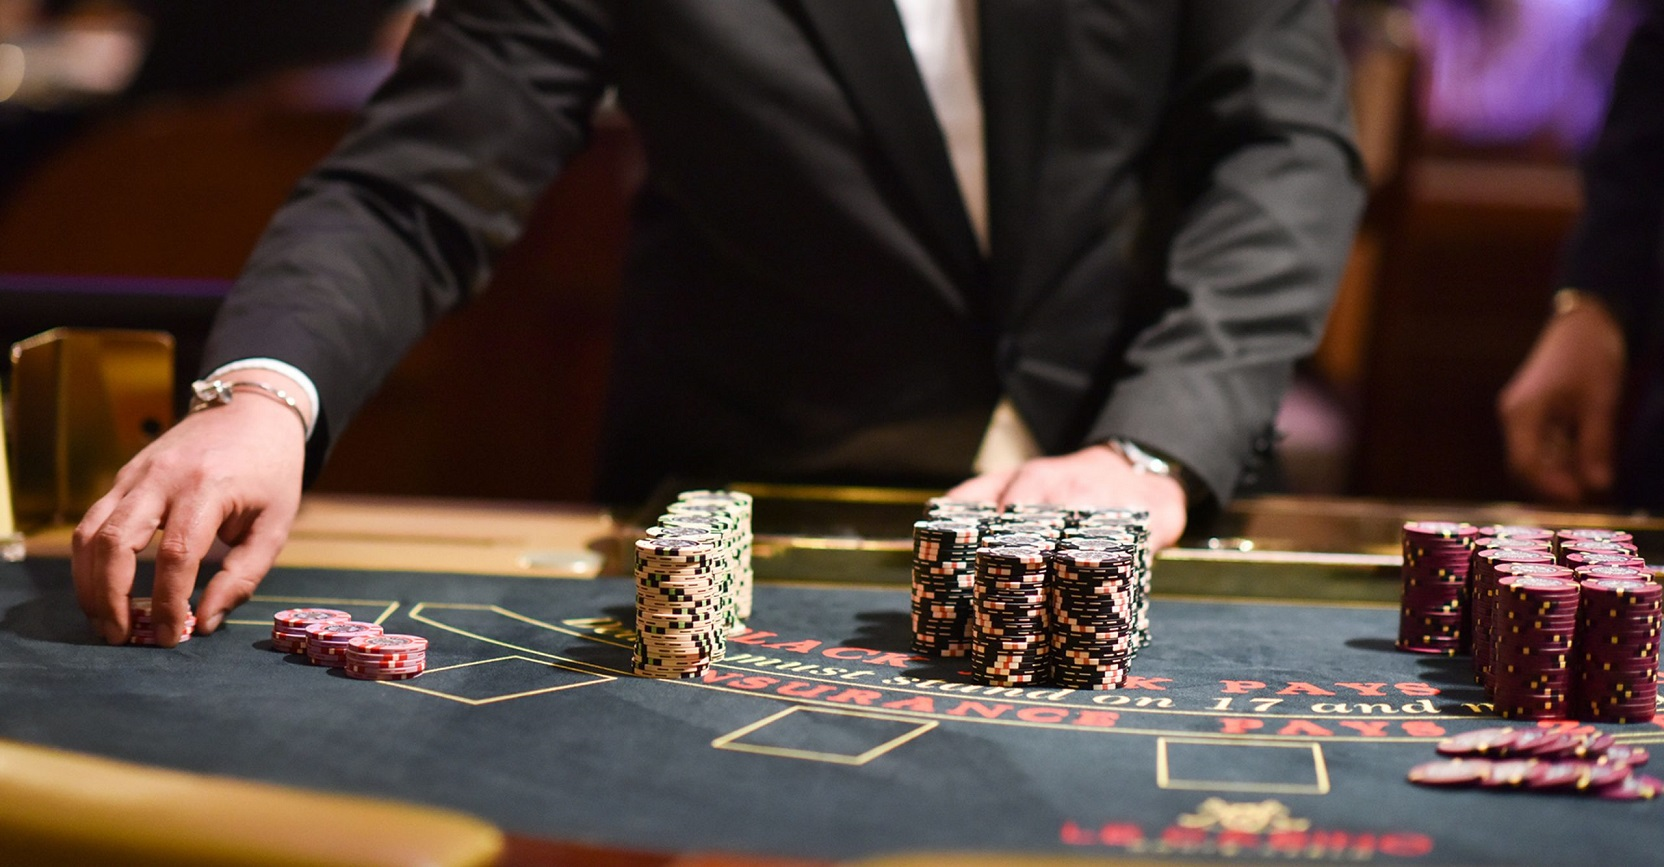 Methods to Deal With(A) Very Bad Online Casino